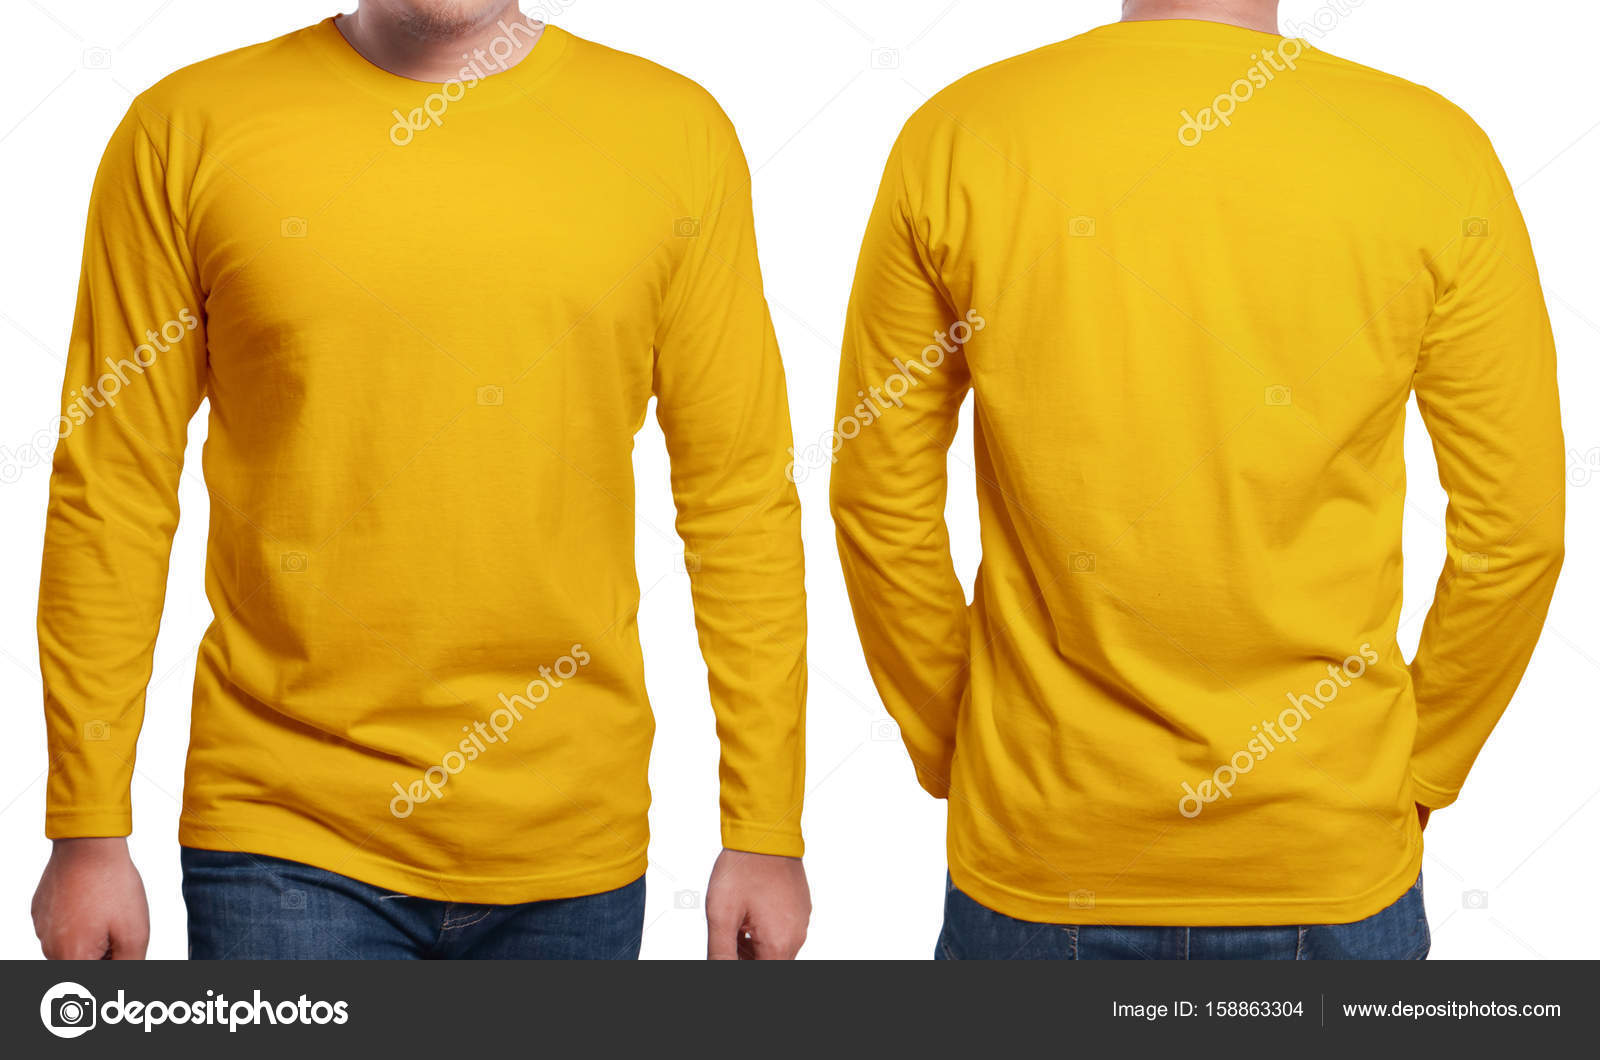 Male Model Wear Plain Orange Shirt Mockup Long Sleeve Design Template Blank Tees For Print Photo By Airdone